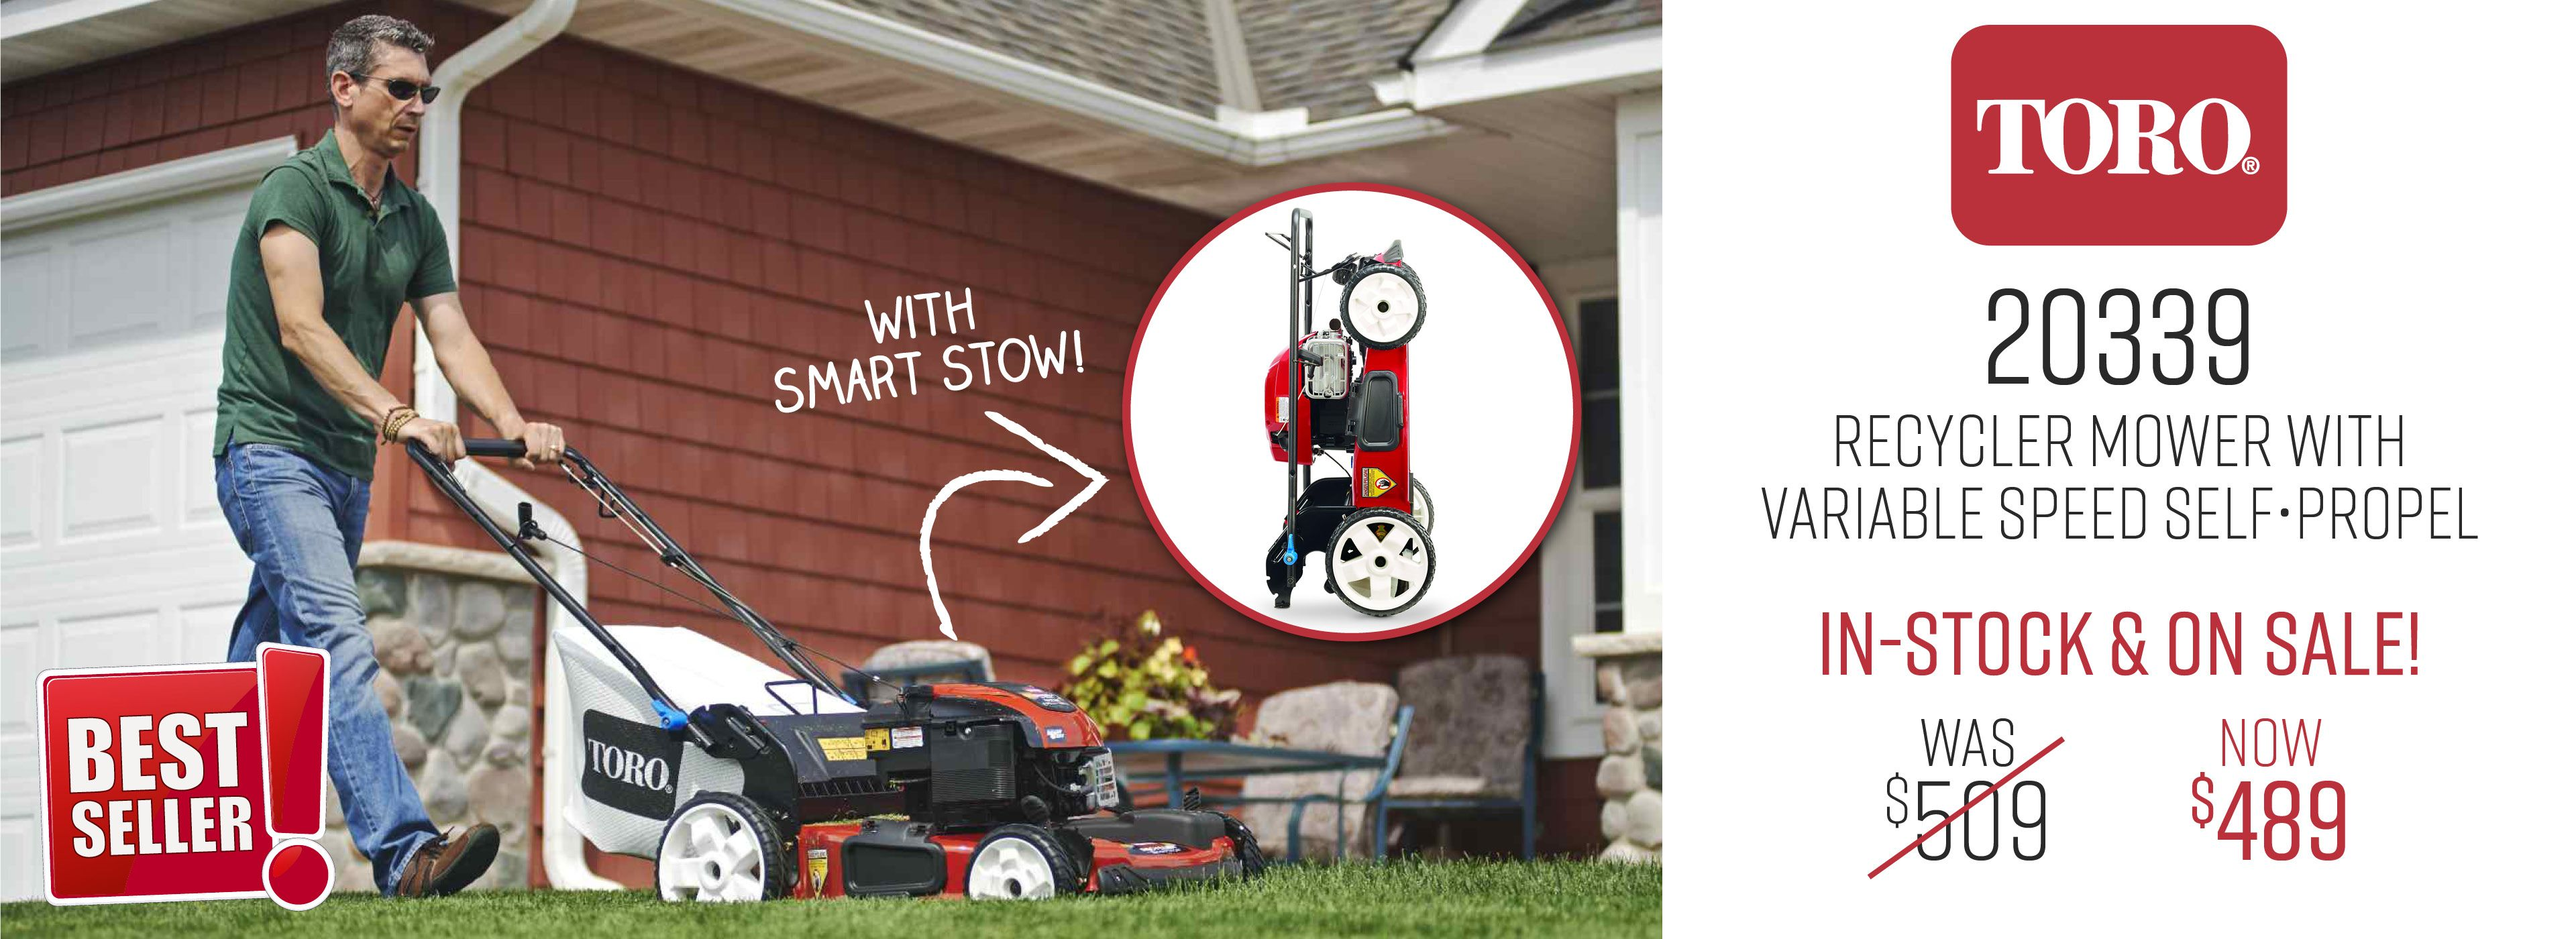 Toro 20339 Lawnmower